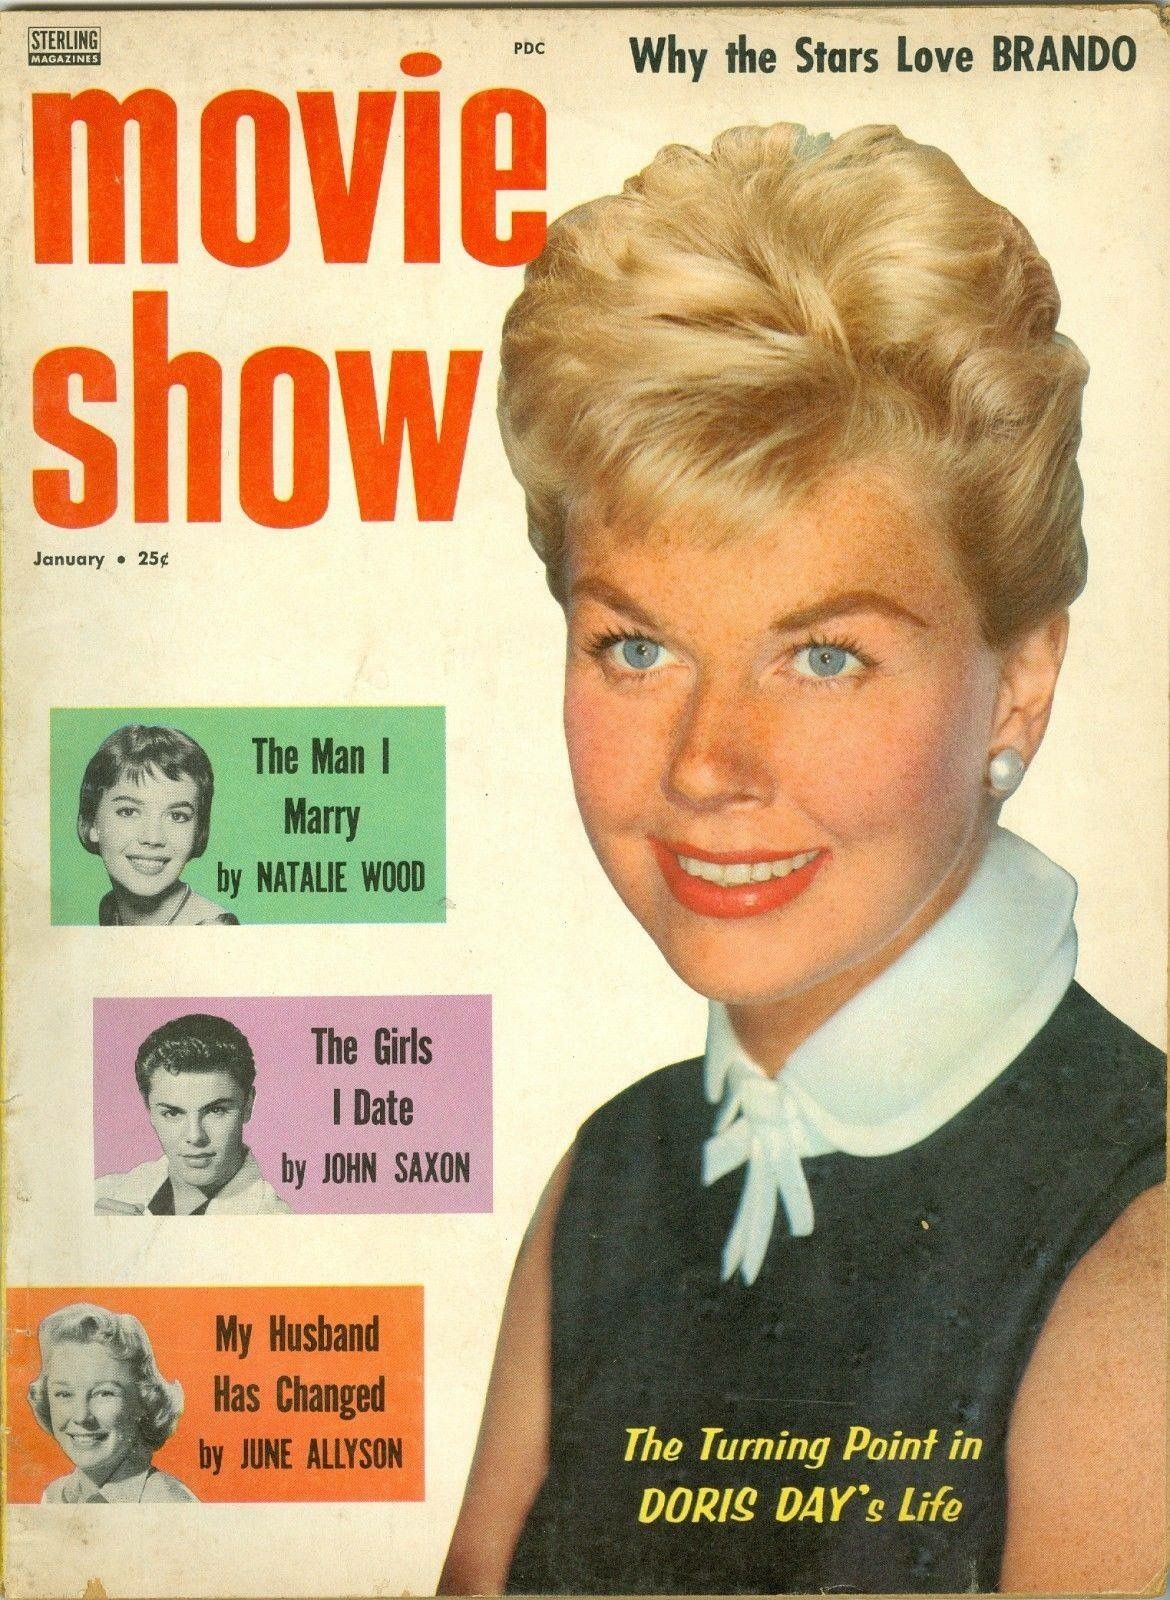 Today (April 3rd) is Doris Day's birthday! She and Natalie